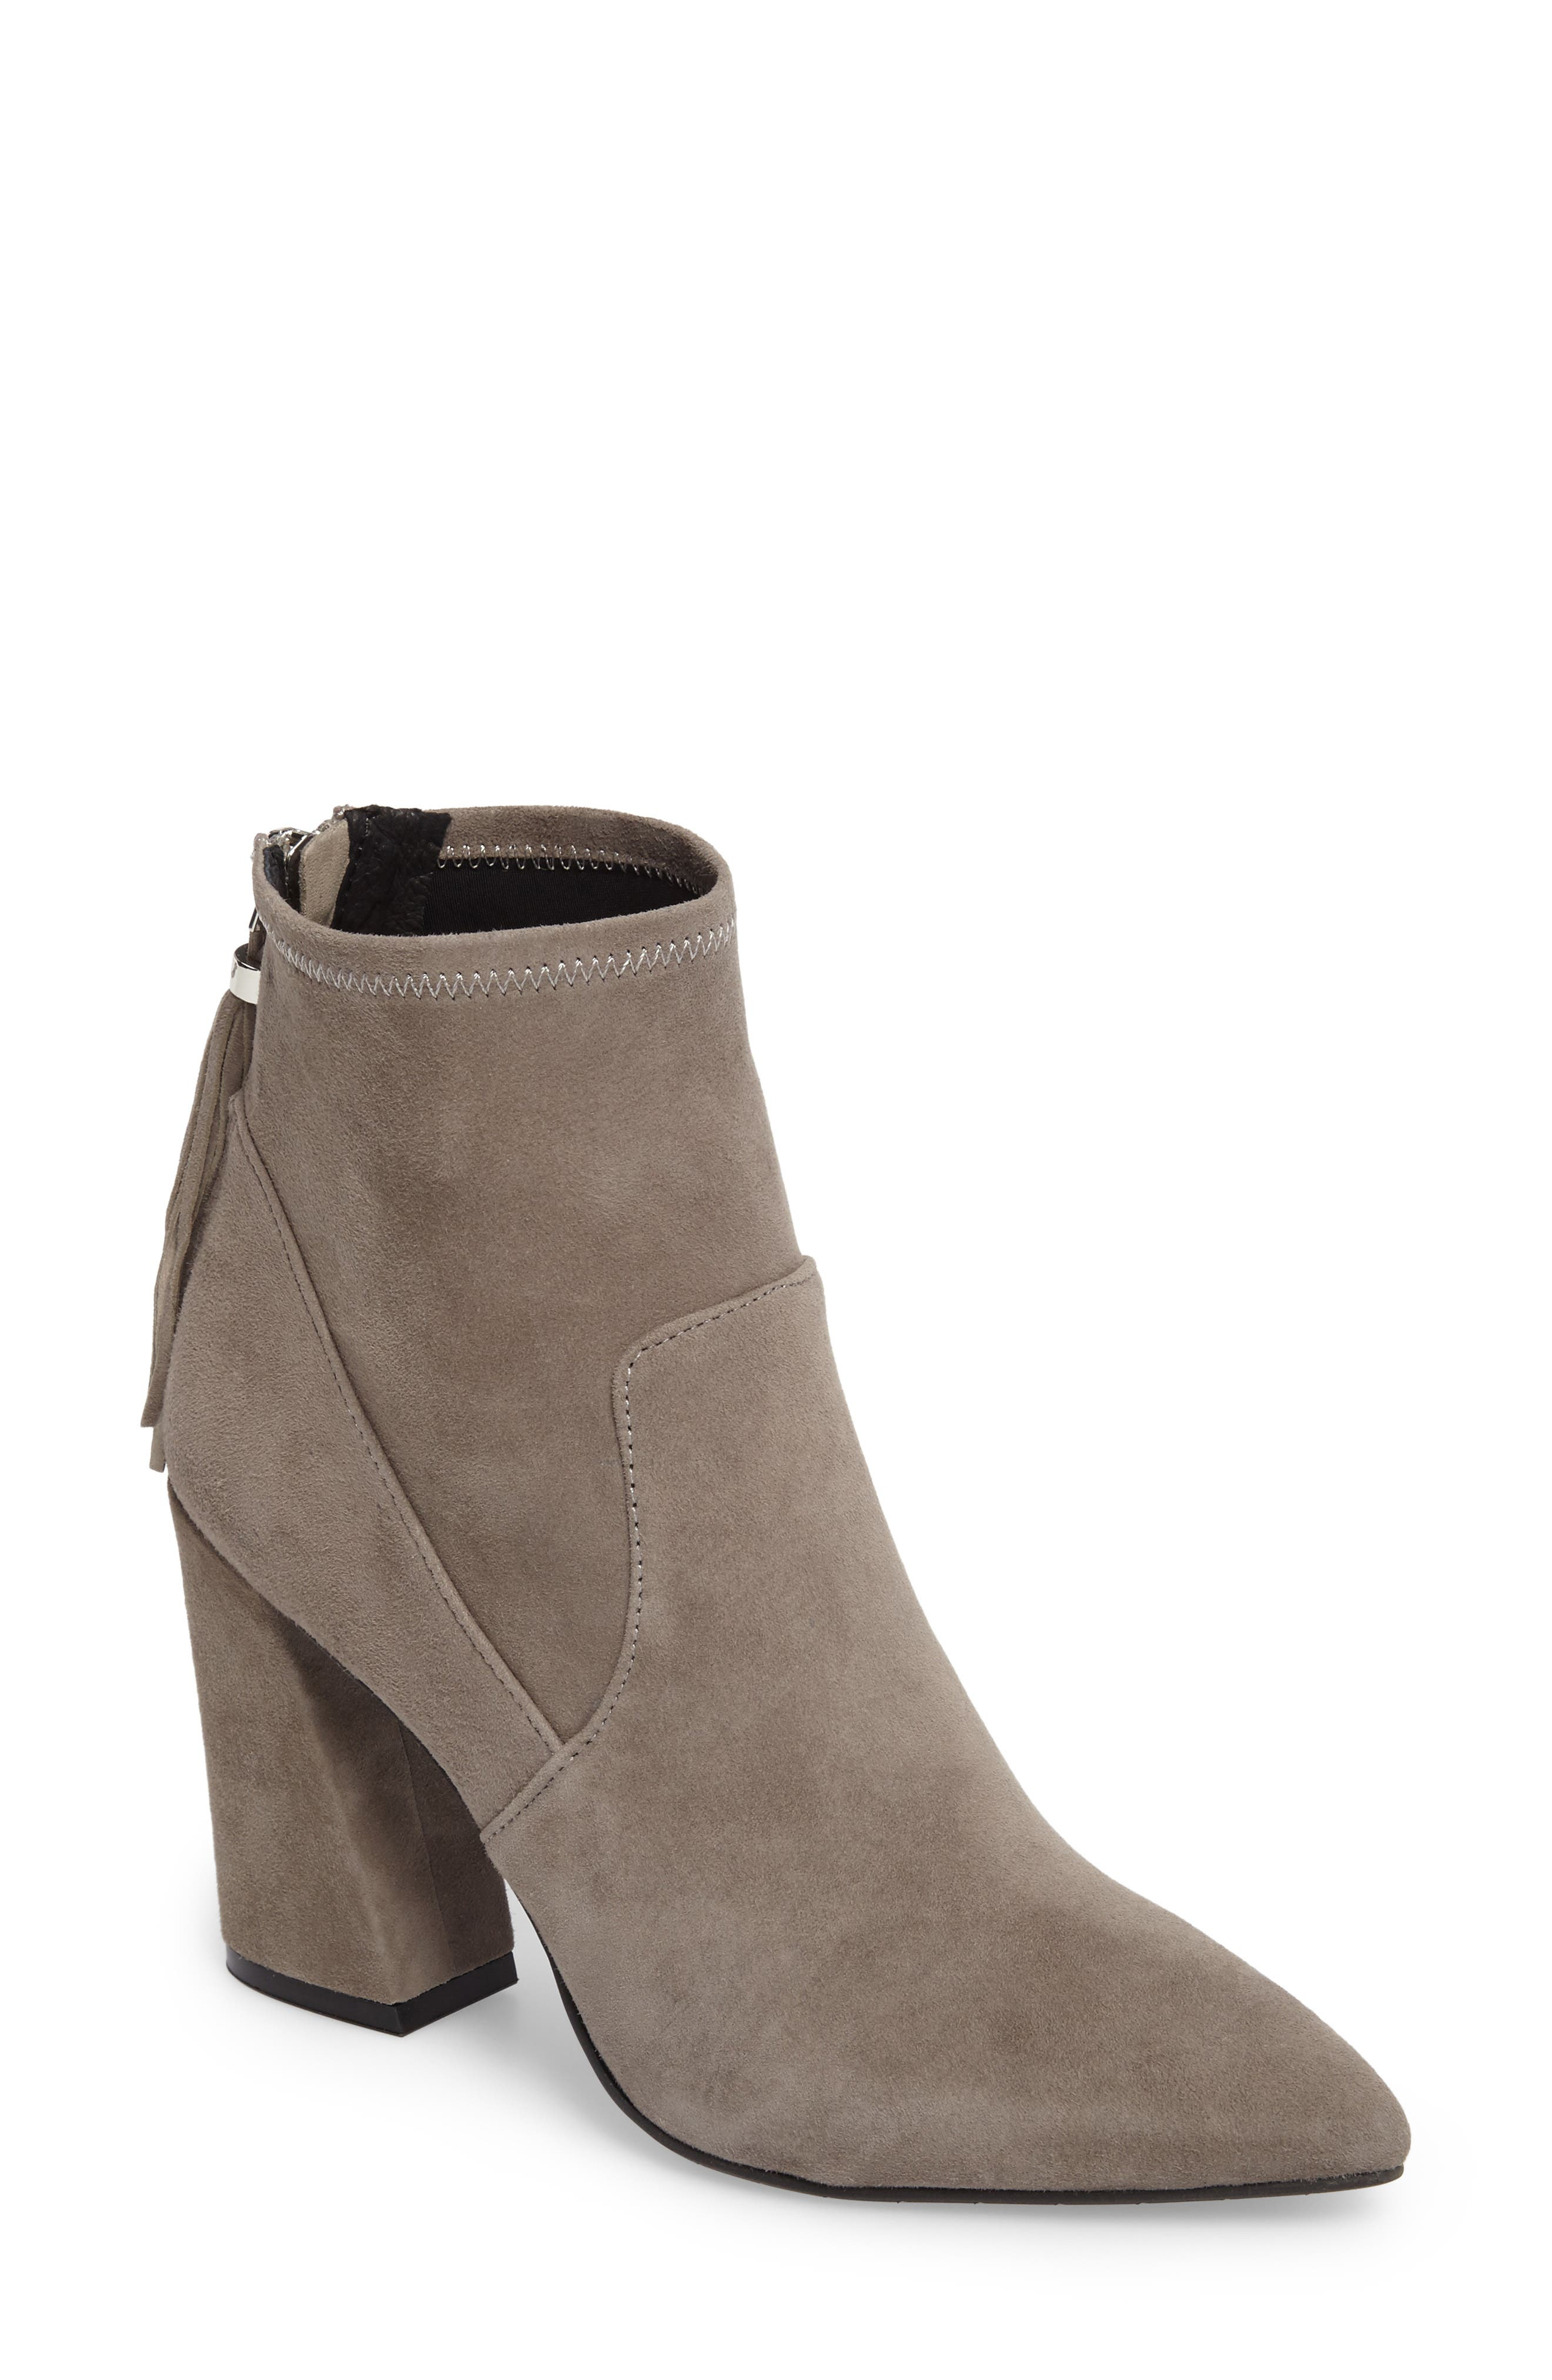 Gracelyn Pointy Toe Bootie,                         Main,                         color, Elephant Suede